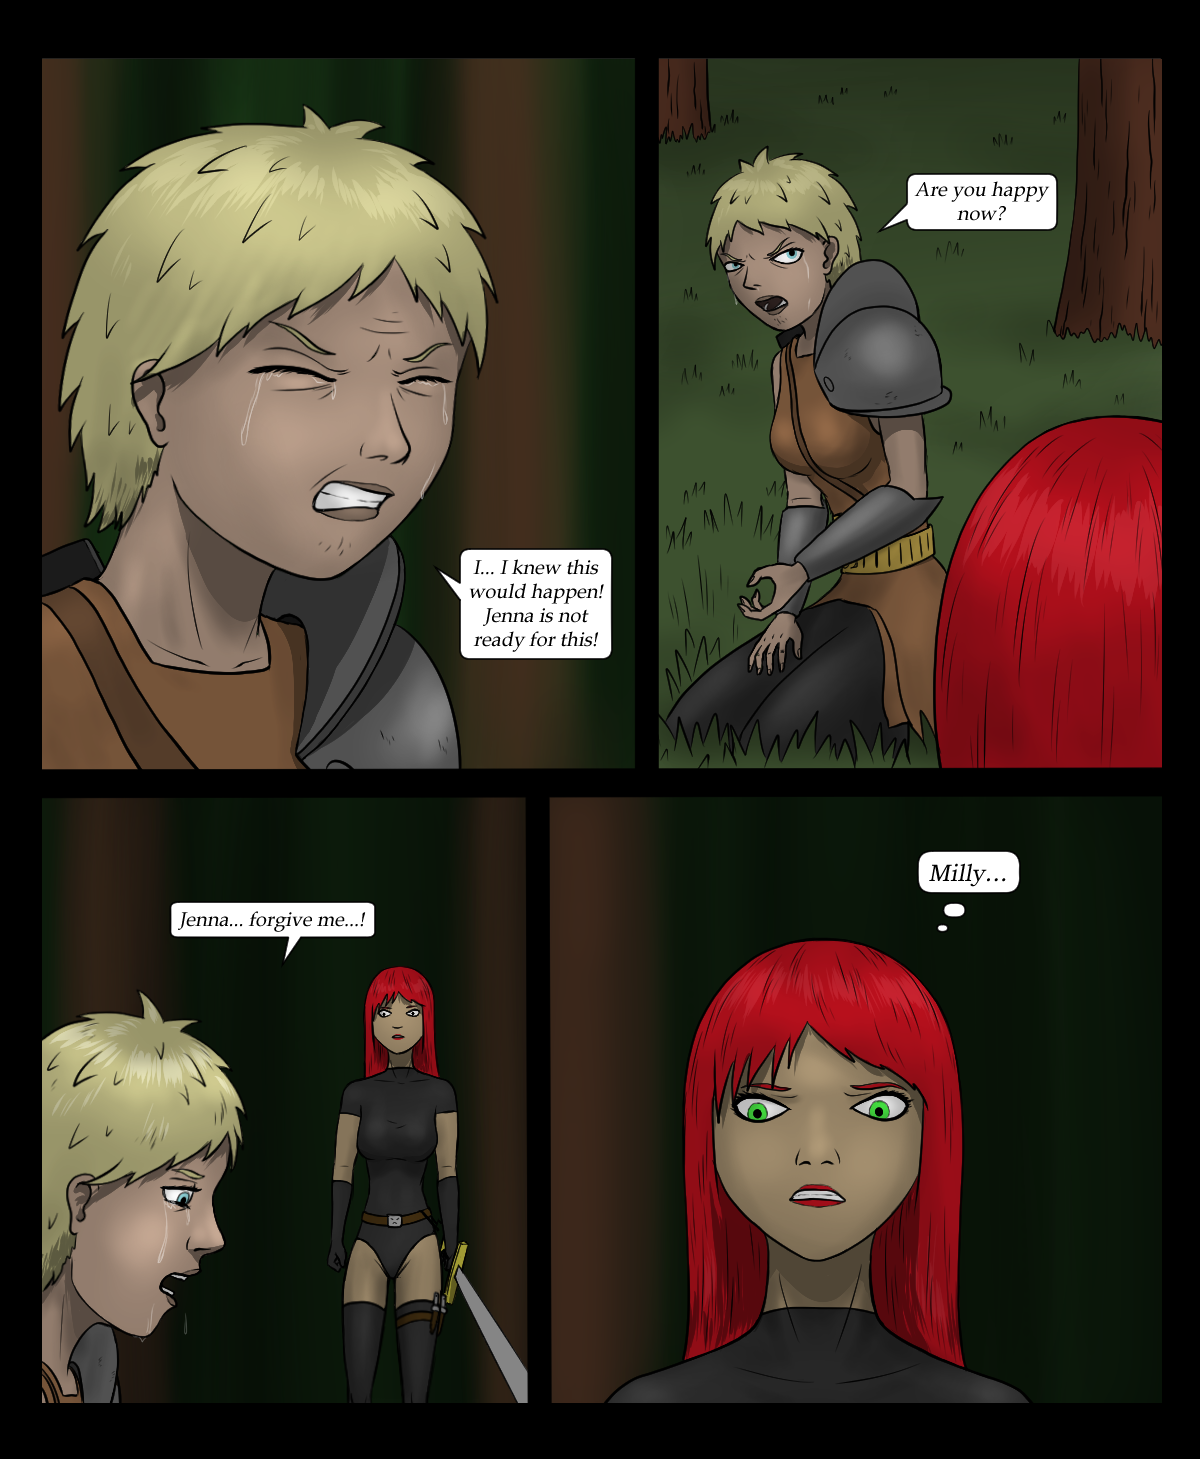 Page 84 - Nothing to say